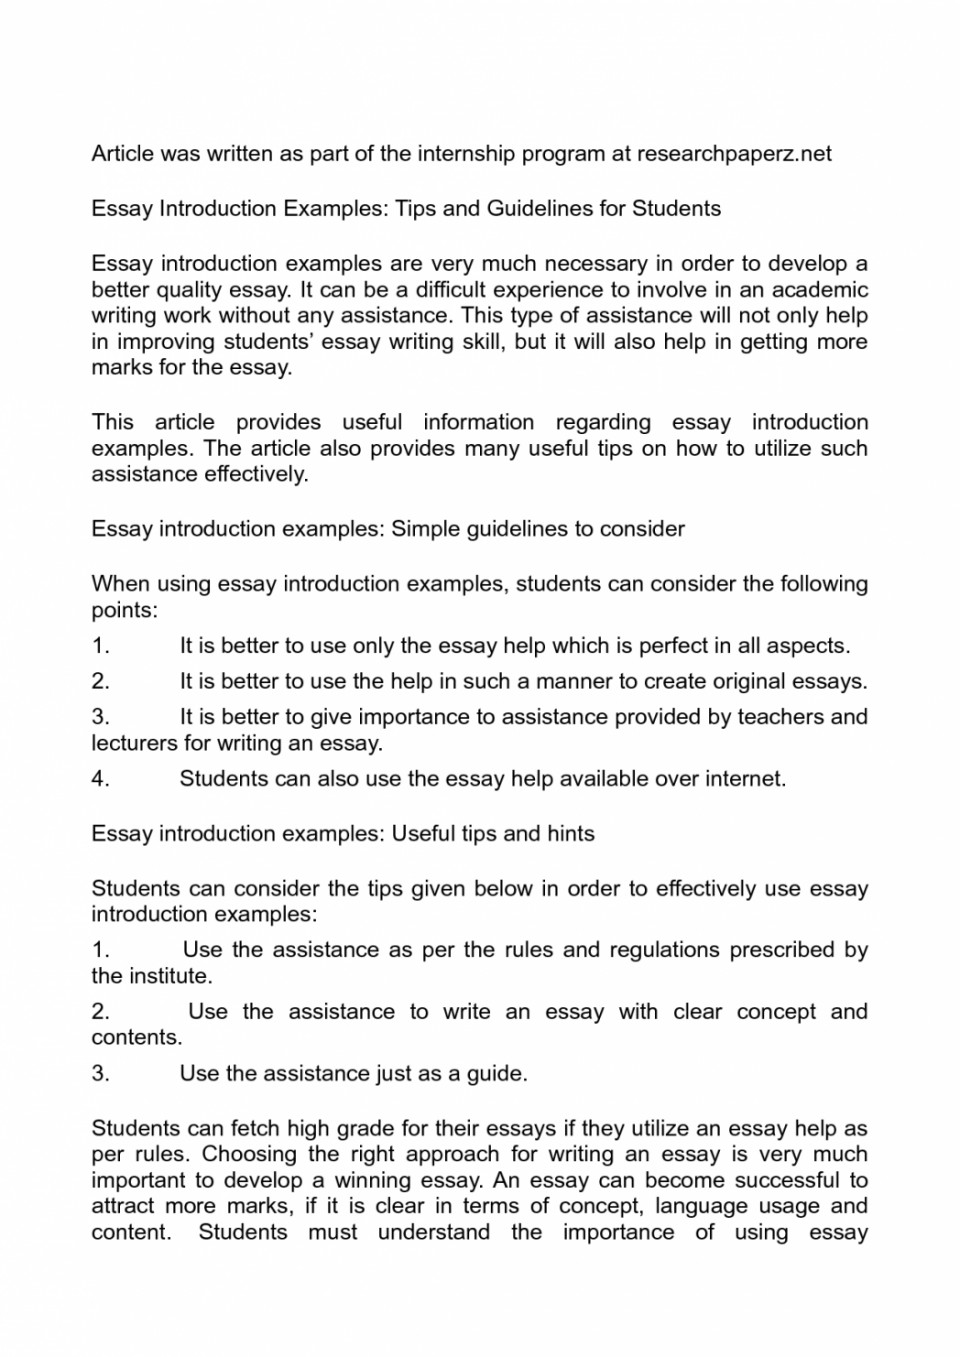 007 Essay Example How To Start Introduction On Good Paragraph An Eyx5t Write University For In Ielts Academic Analytical Argumentative Hook Examples Great Intro 1048x1482 Awesome A Sentence College 960